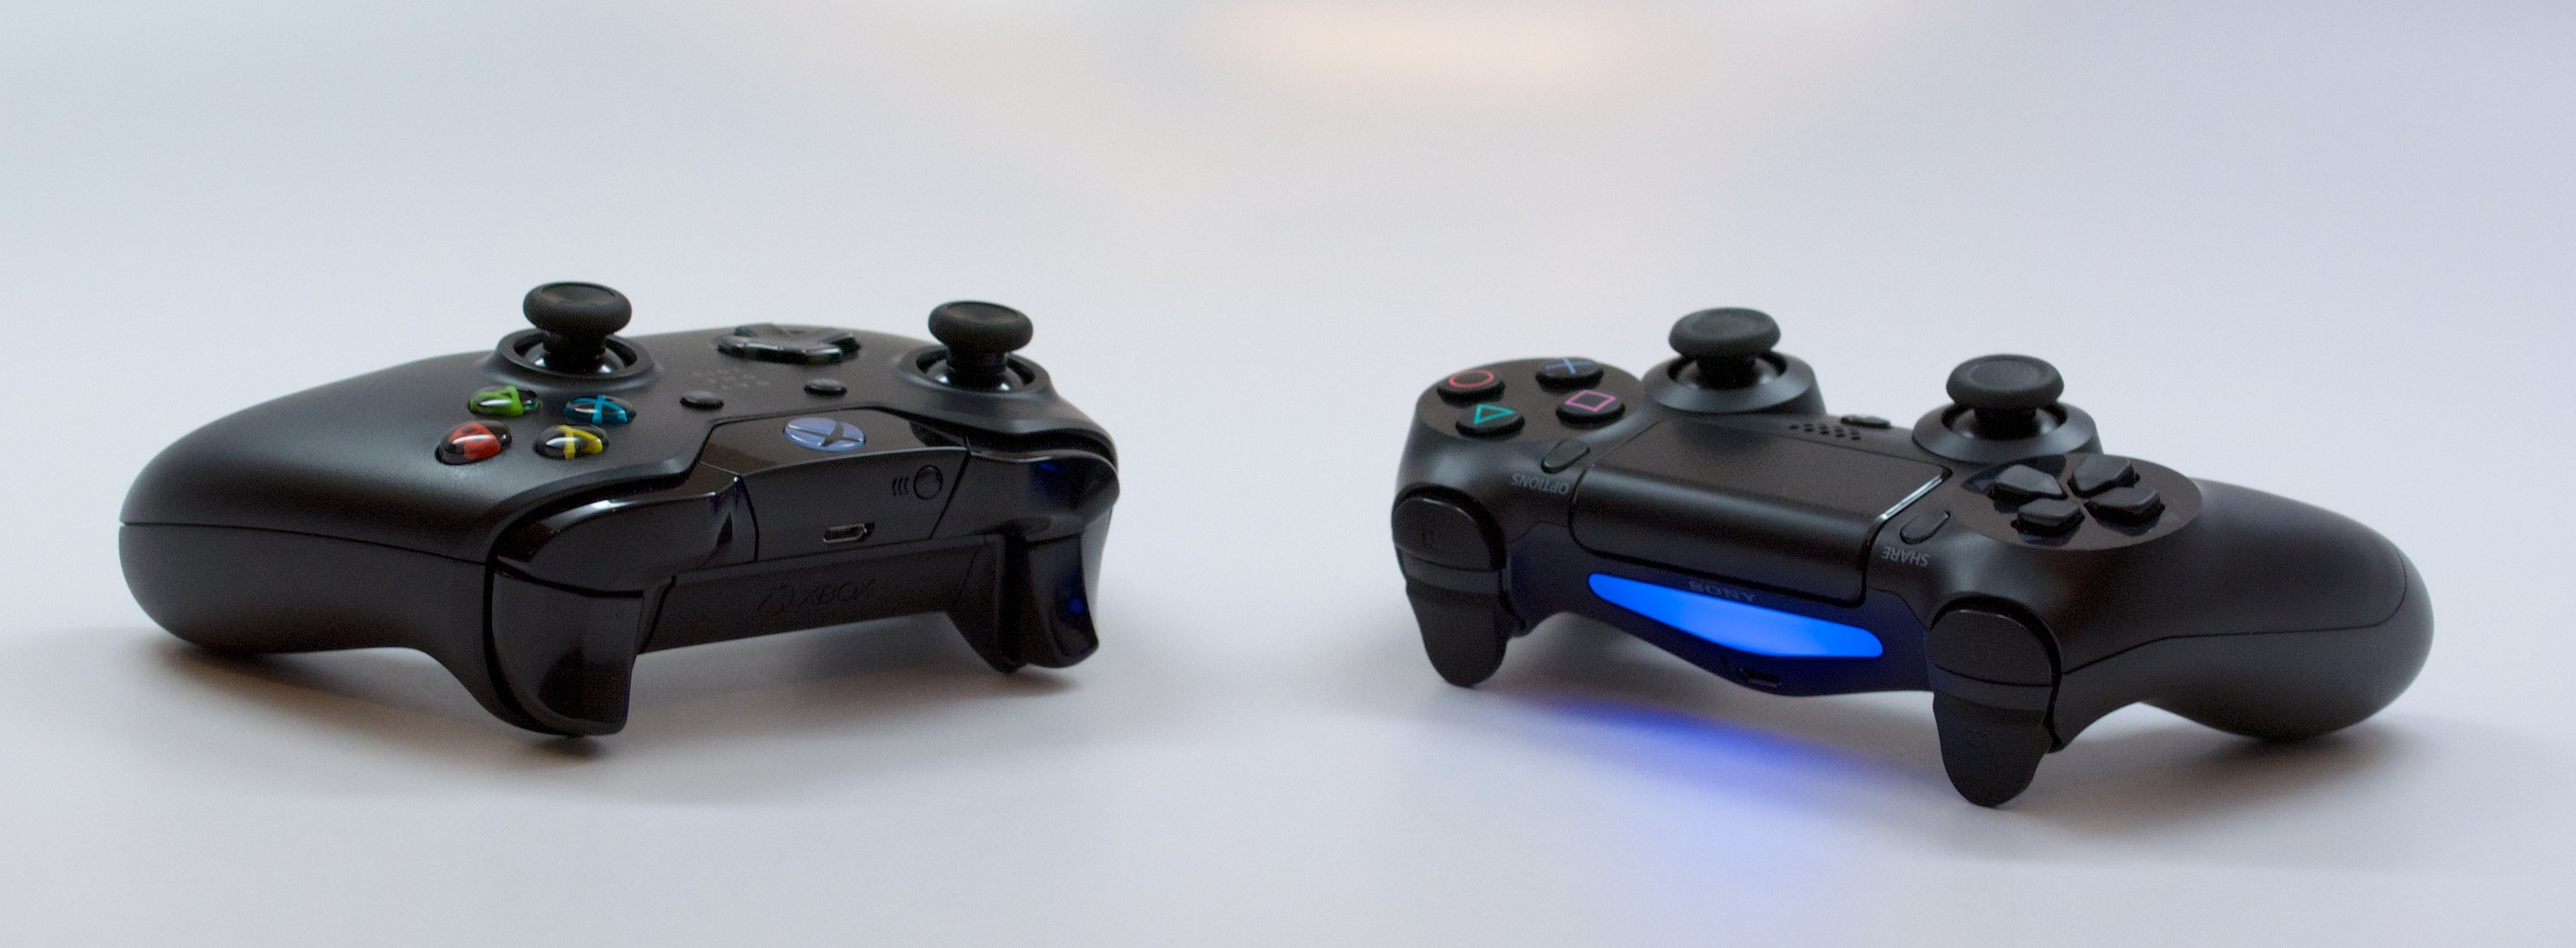 The PS4 and Xbox One controllers add new features.